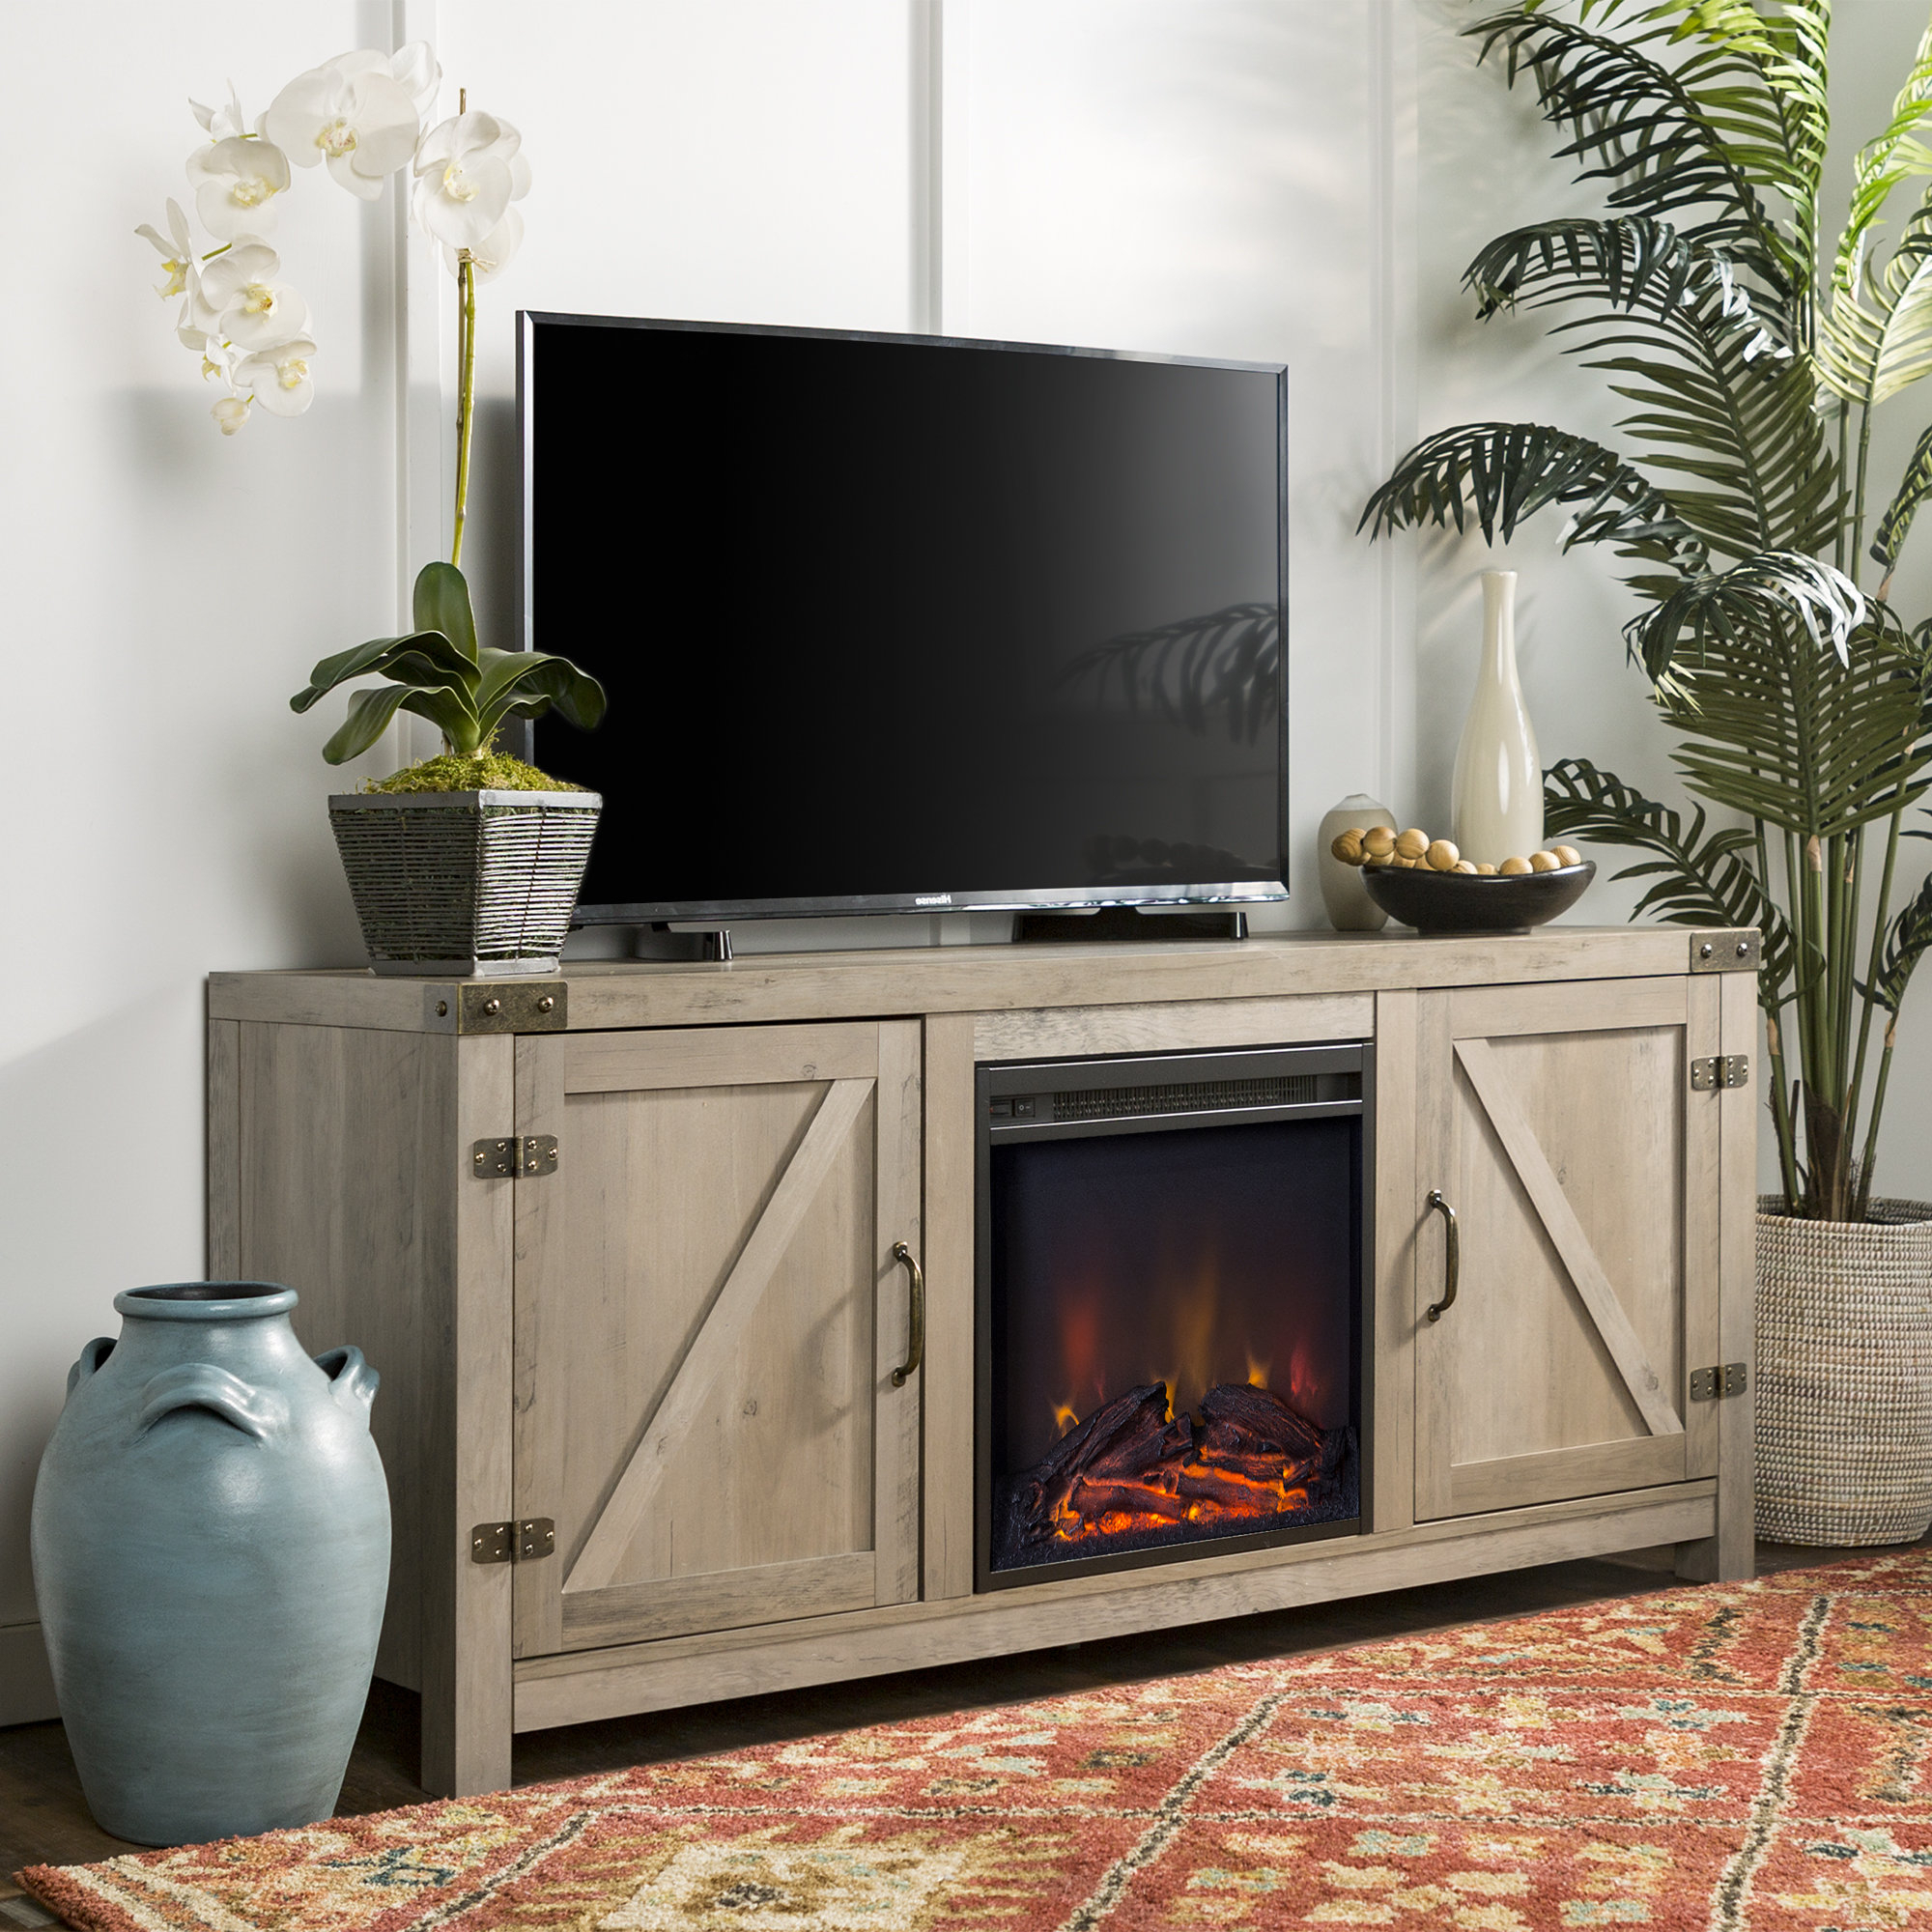 Tv Stand For 75 Inch Tv | Wayfair Regarding Laurent 60 Inch Tv Stands (Gallery 17 of 20)